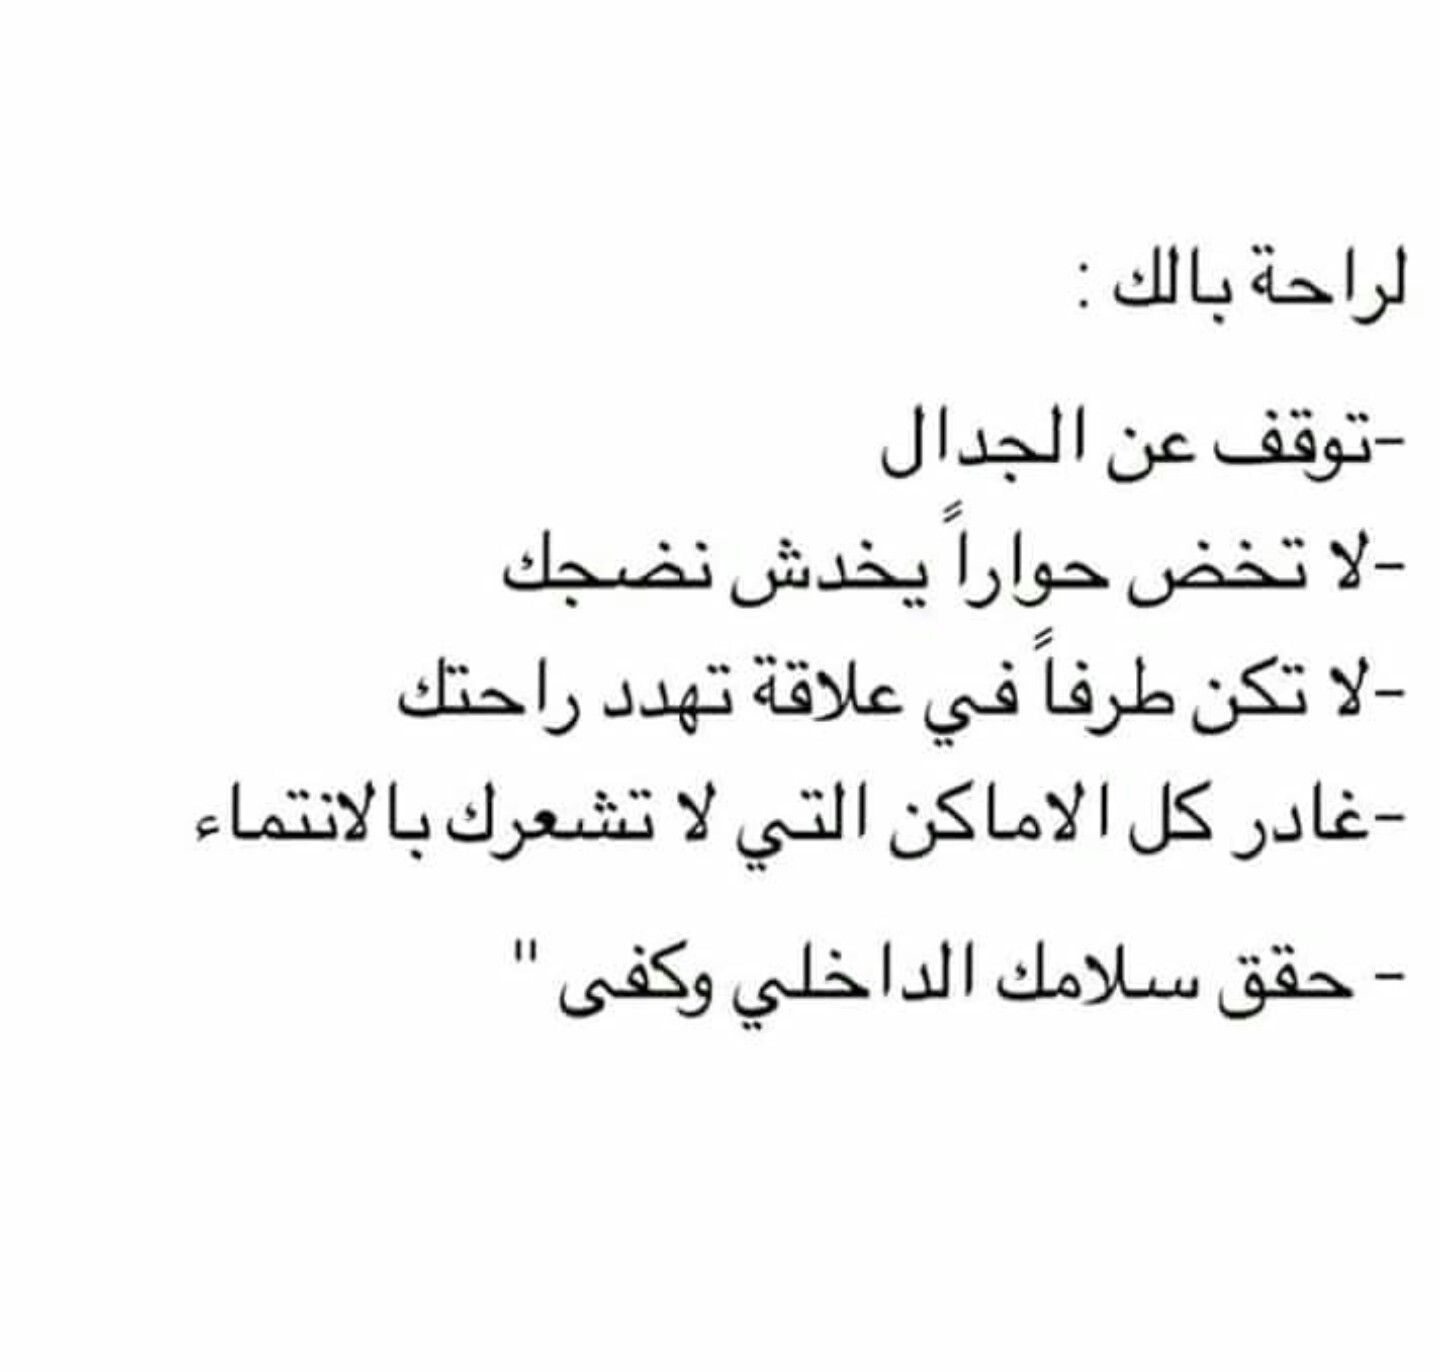 Pin By Fatima On كلام جميل Book Quotes Quotations Photo Quotes